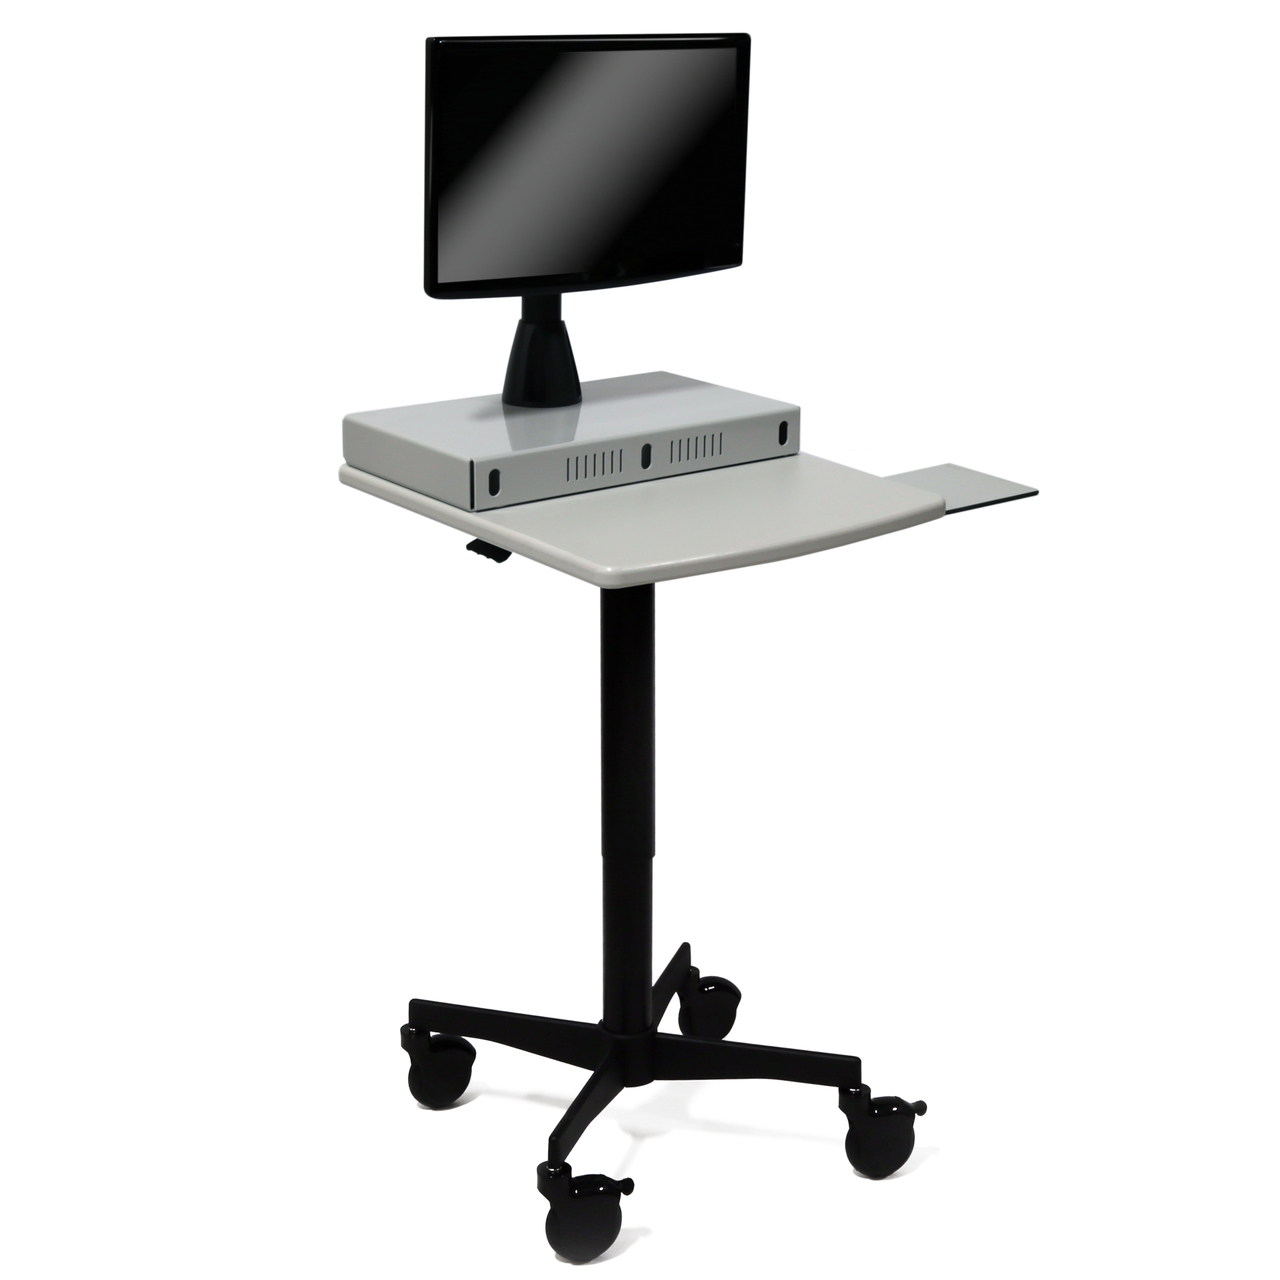 Mov-it All-in-One: ABS Mobile Document Cart